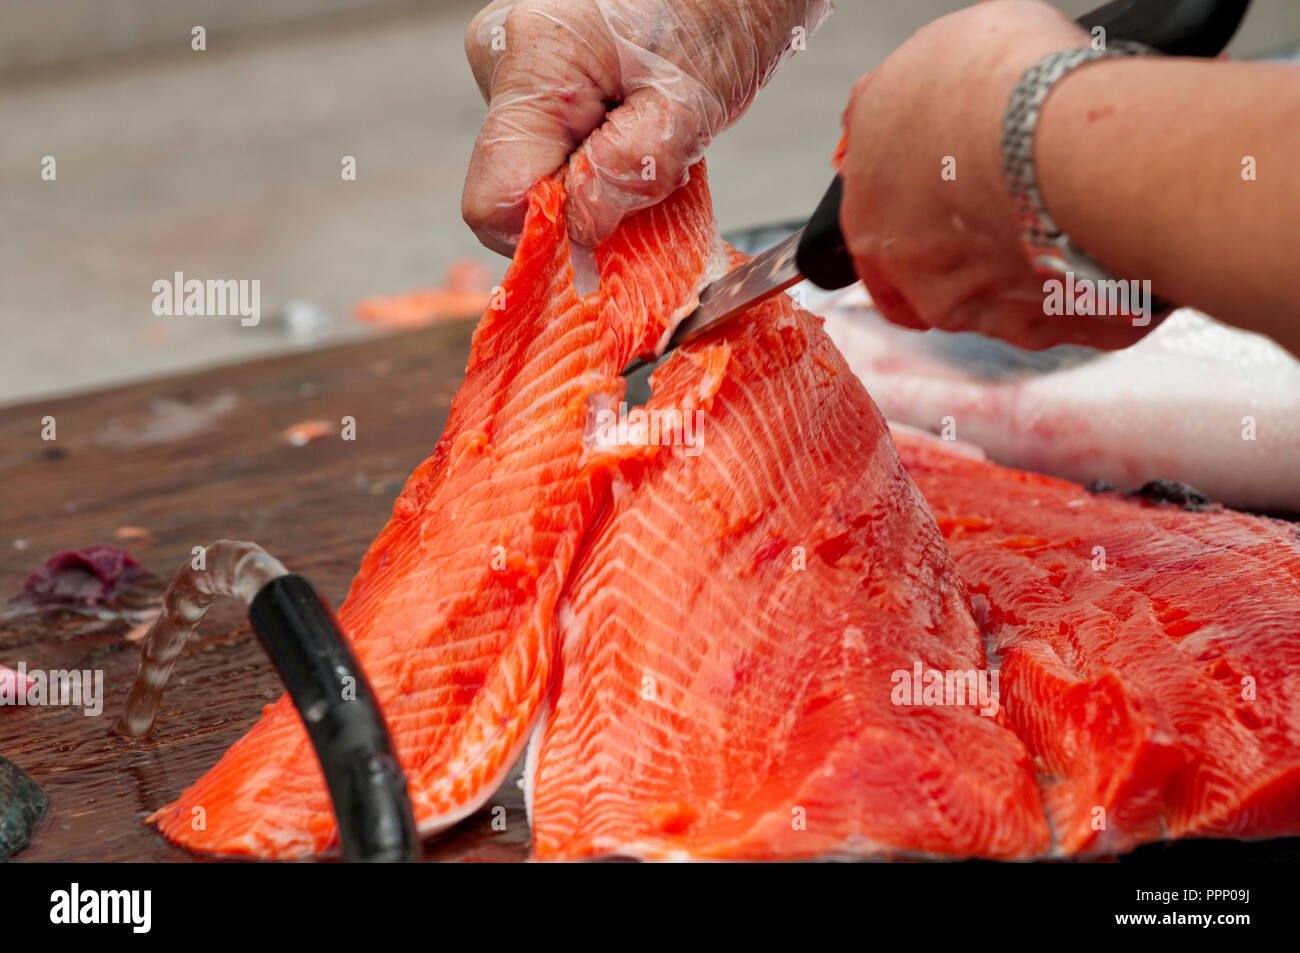 First Nation member, cleans and cuts freshly catched salmon (Prince Rupert, British Columbia) - Stock Image